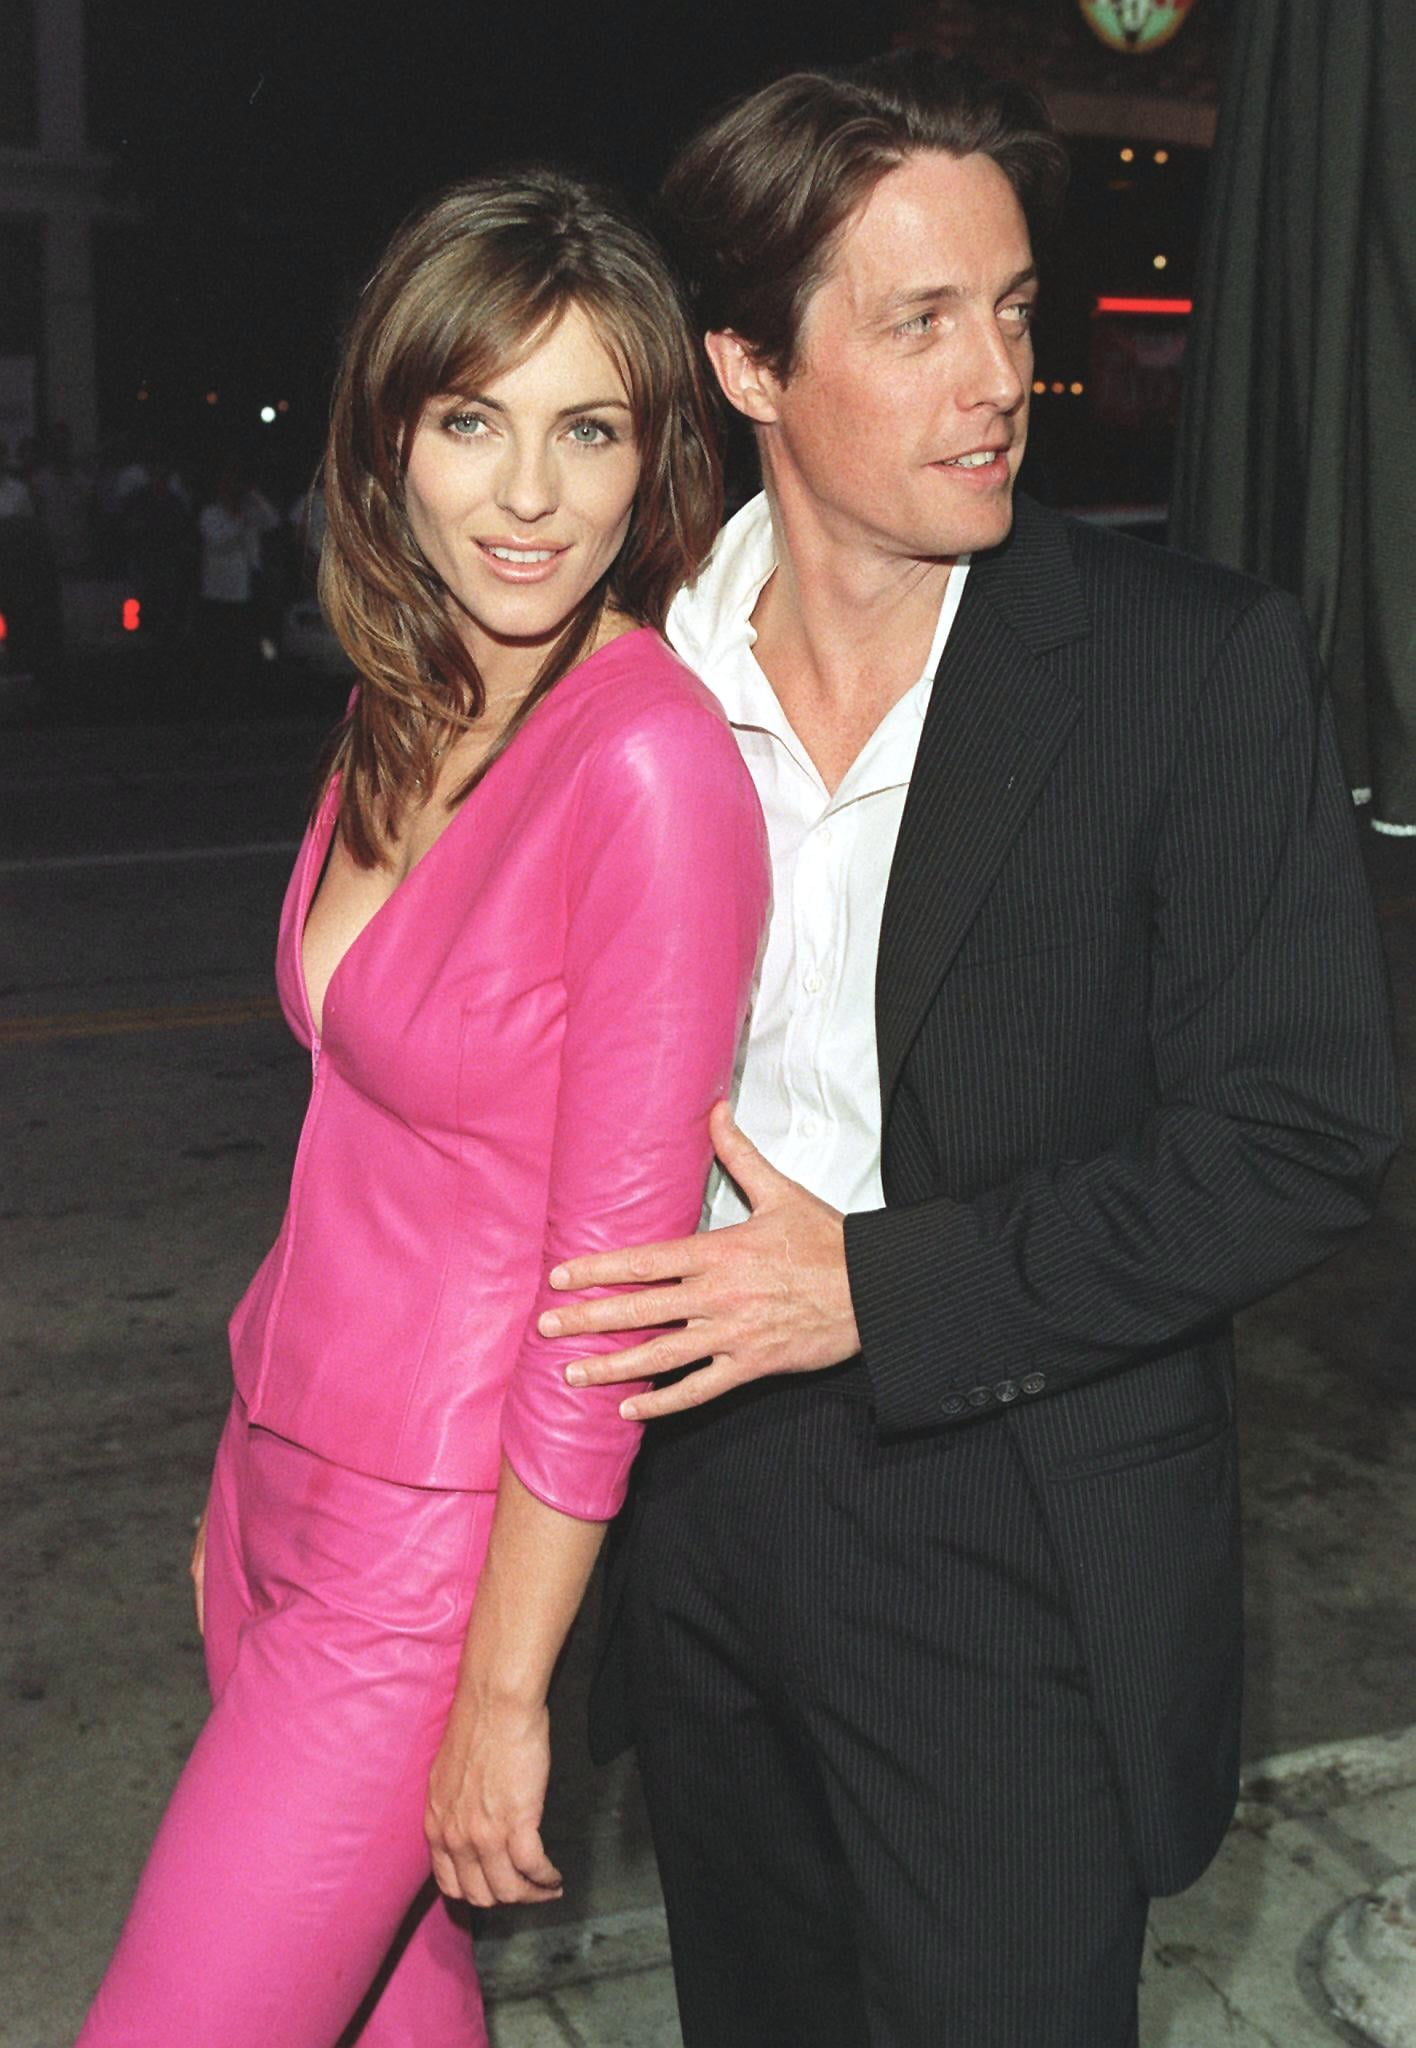 After giving birth to her son Damian in 2002, Elizabeth Hurley gave the godfather role to none other than ex-boyfriend Hugh Grant — they split amicably in 2000. Liz was clearly feeling generous with the title, as Hugh is just one of eight godfathers to Damian, whose father is businessman Steve Bing. Other stars with the job include Elton John, Denis Leary, and the late Heath Ledger.